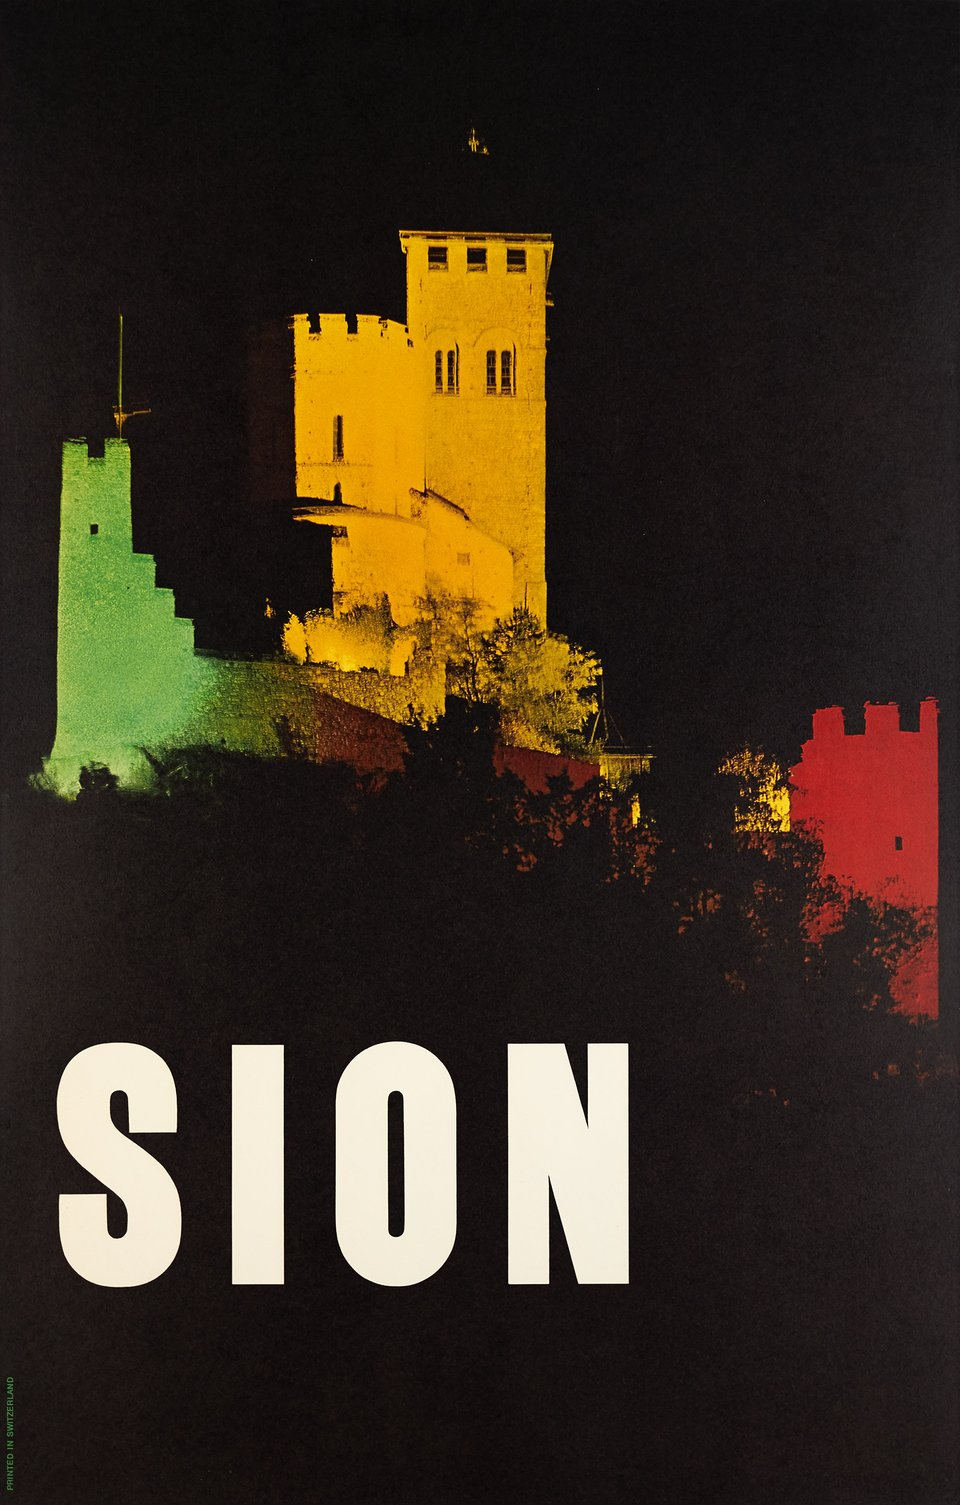 Sion – Affiche ancienne – STUDIO CAMERA – 1965